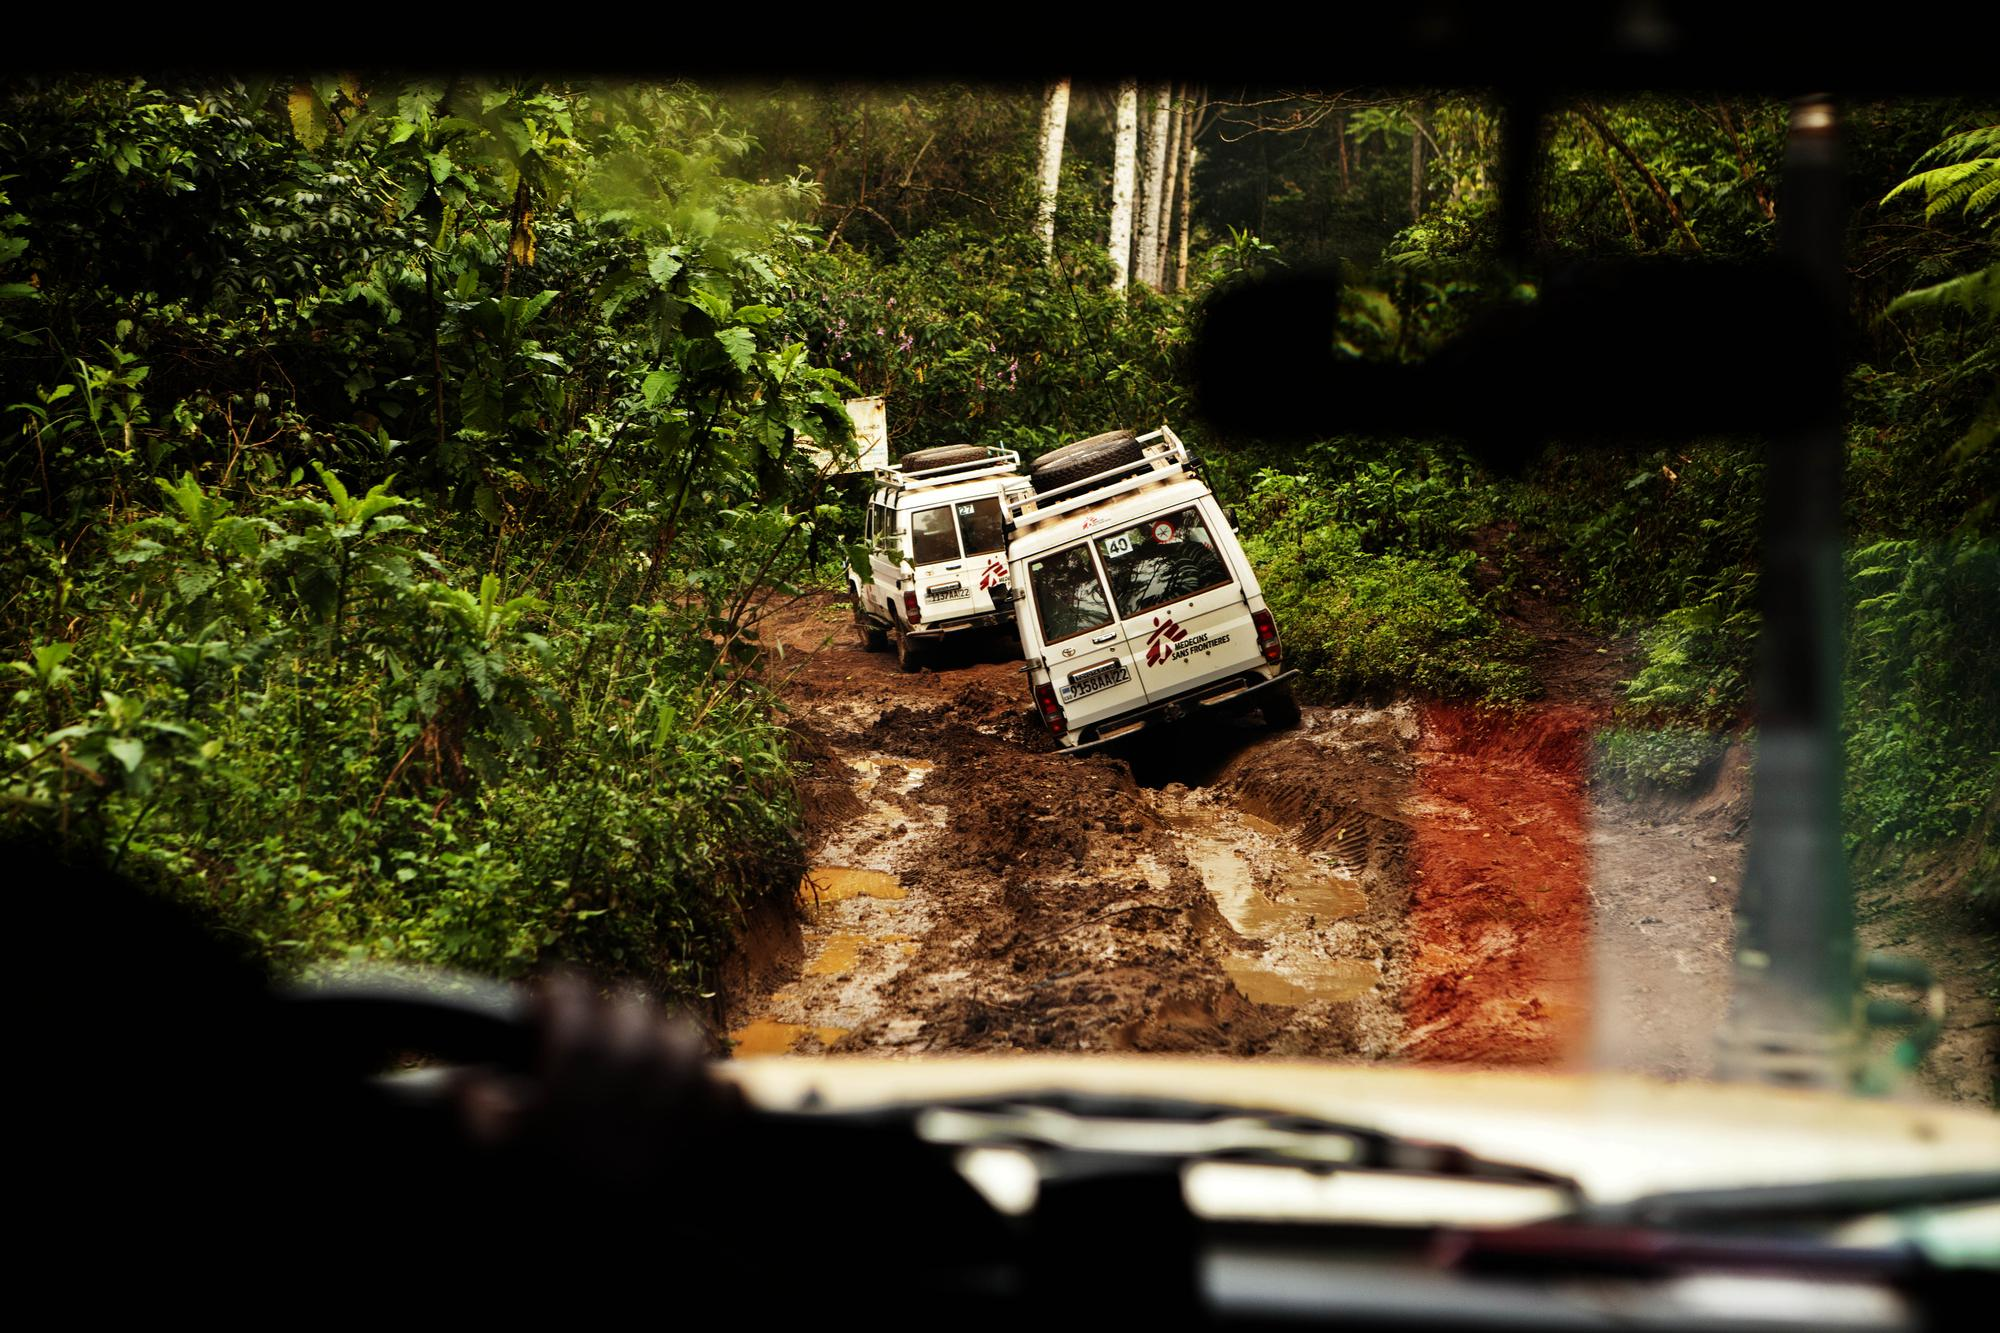 Looking out a windscreen, two all-terrain vehicles make their way along a muddy road.